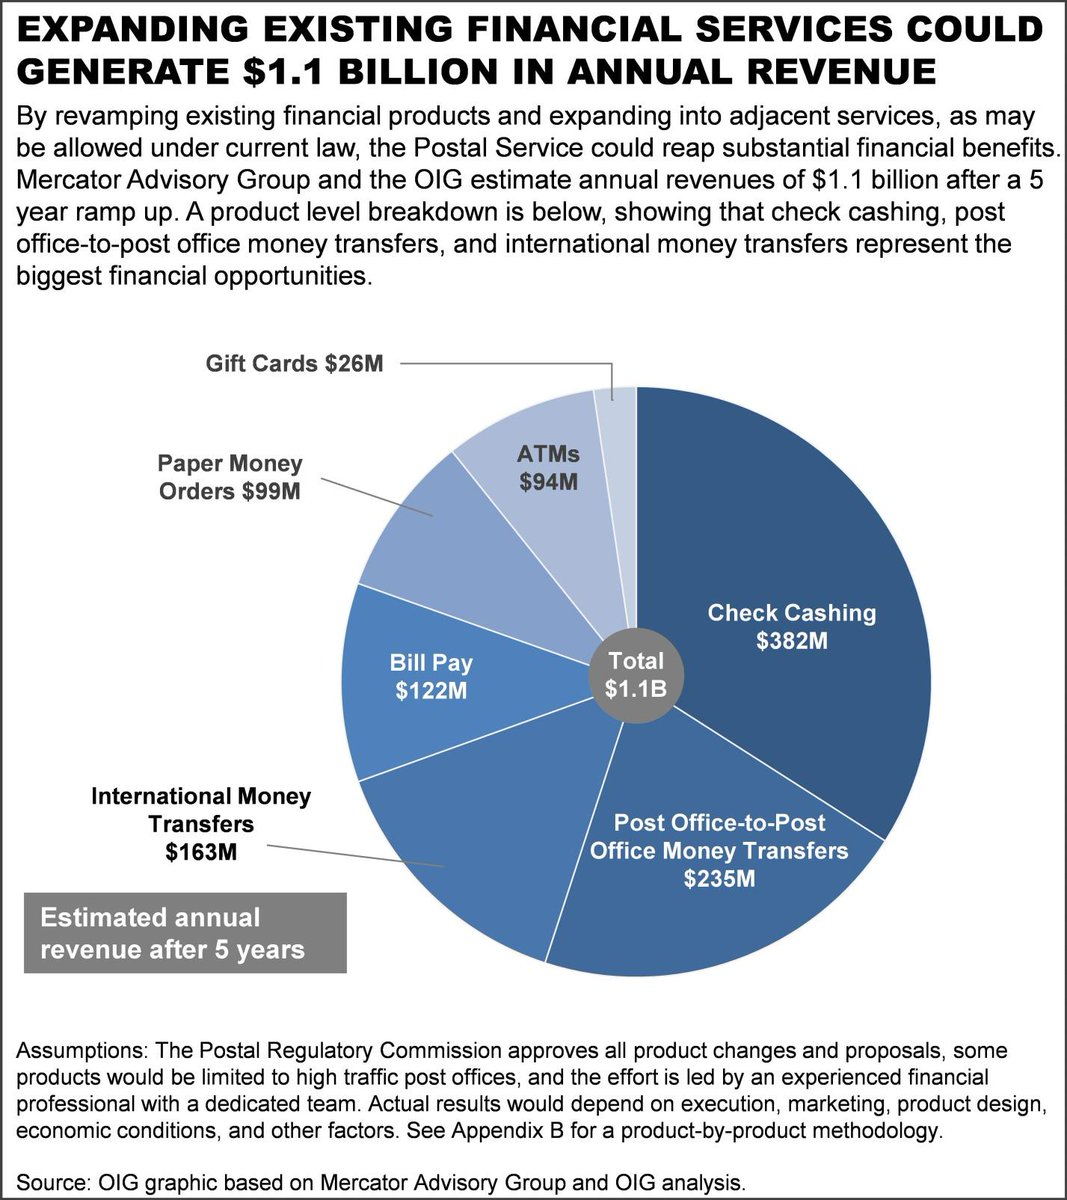 #USPS could make $1.1B in revenue on #FinancialServices without a change in law. http://t.co/GAXYxOcPU1 http://t.co/SjIdO6y9oX